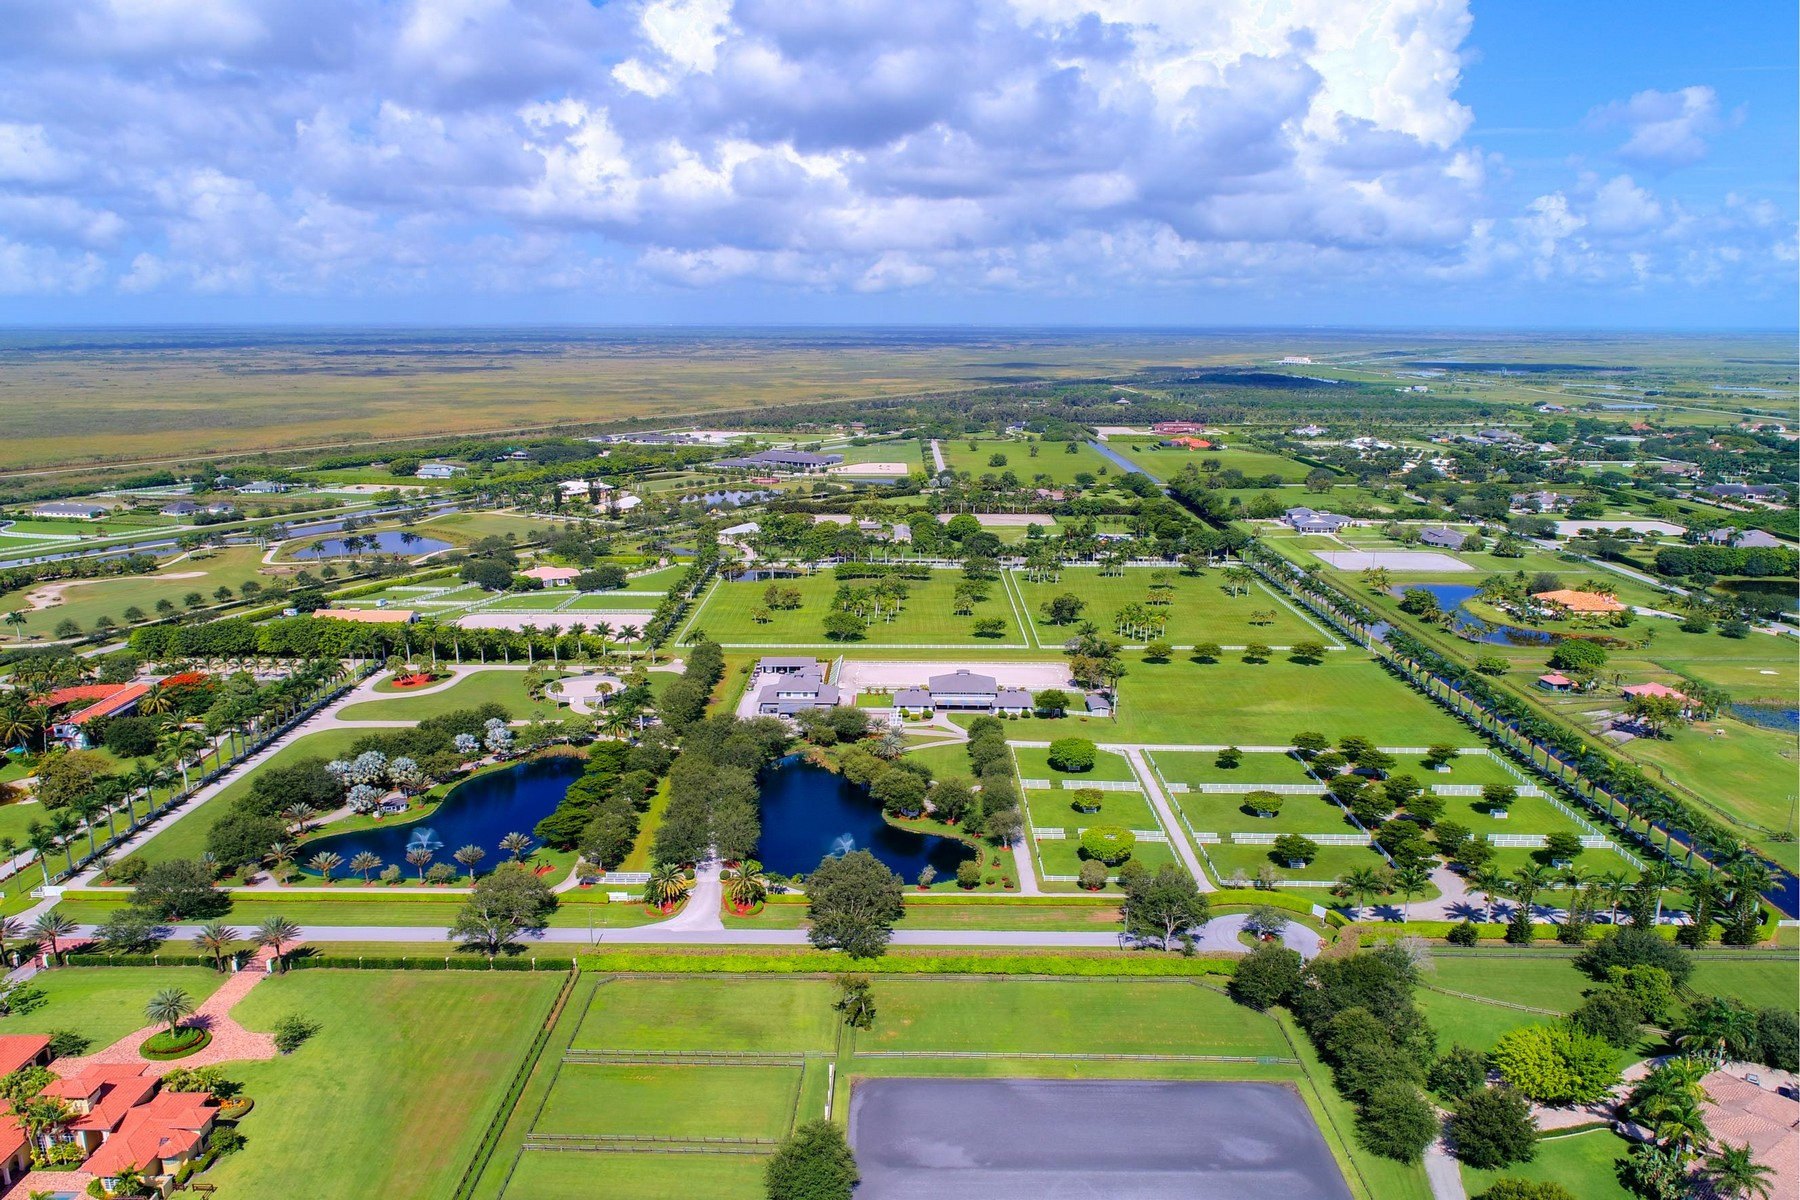 Casa Unifamiliar por un Venta en Owls Roost Farms 4481 Garden Point Trail, Palm Beach Point, Wellington, Florida, 33414 Estados Unidos